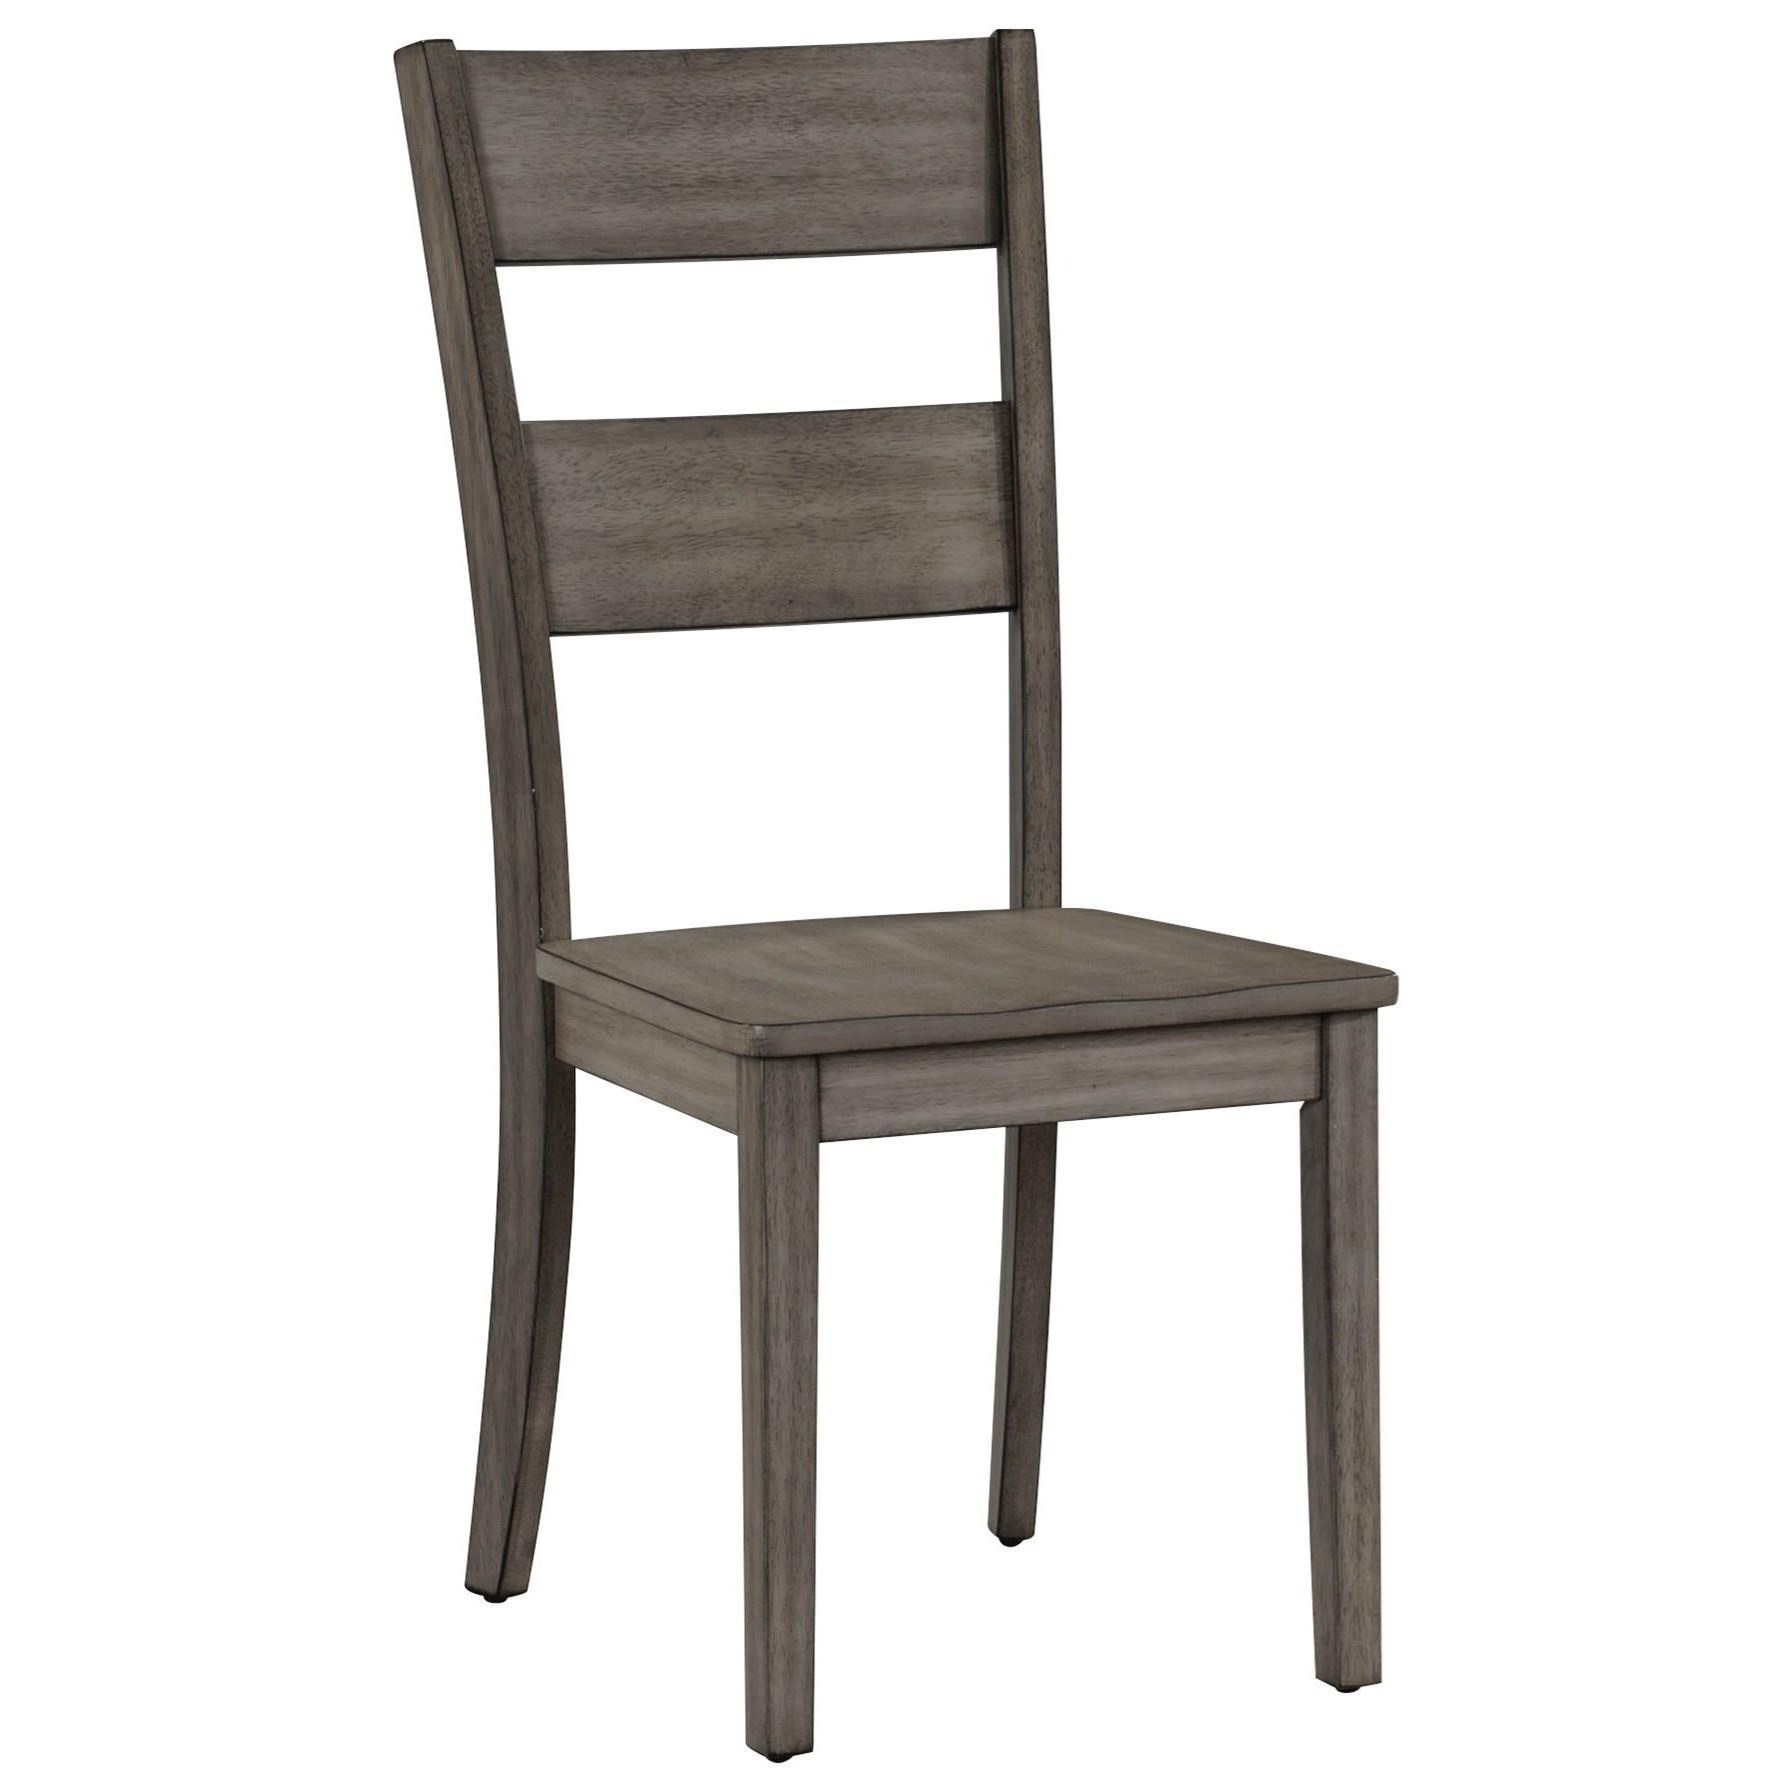 Sean Casual Dining Chair by Crown Mark at Catalog Outlet